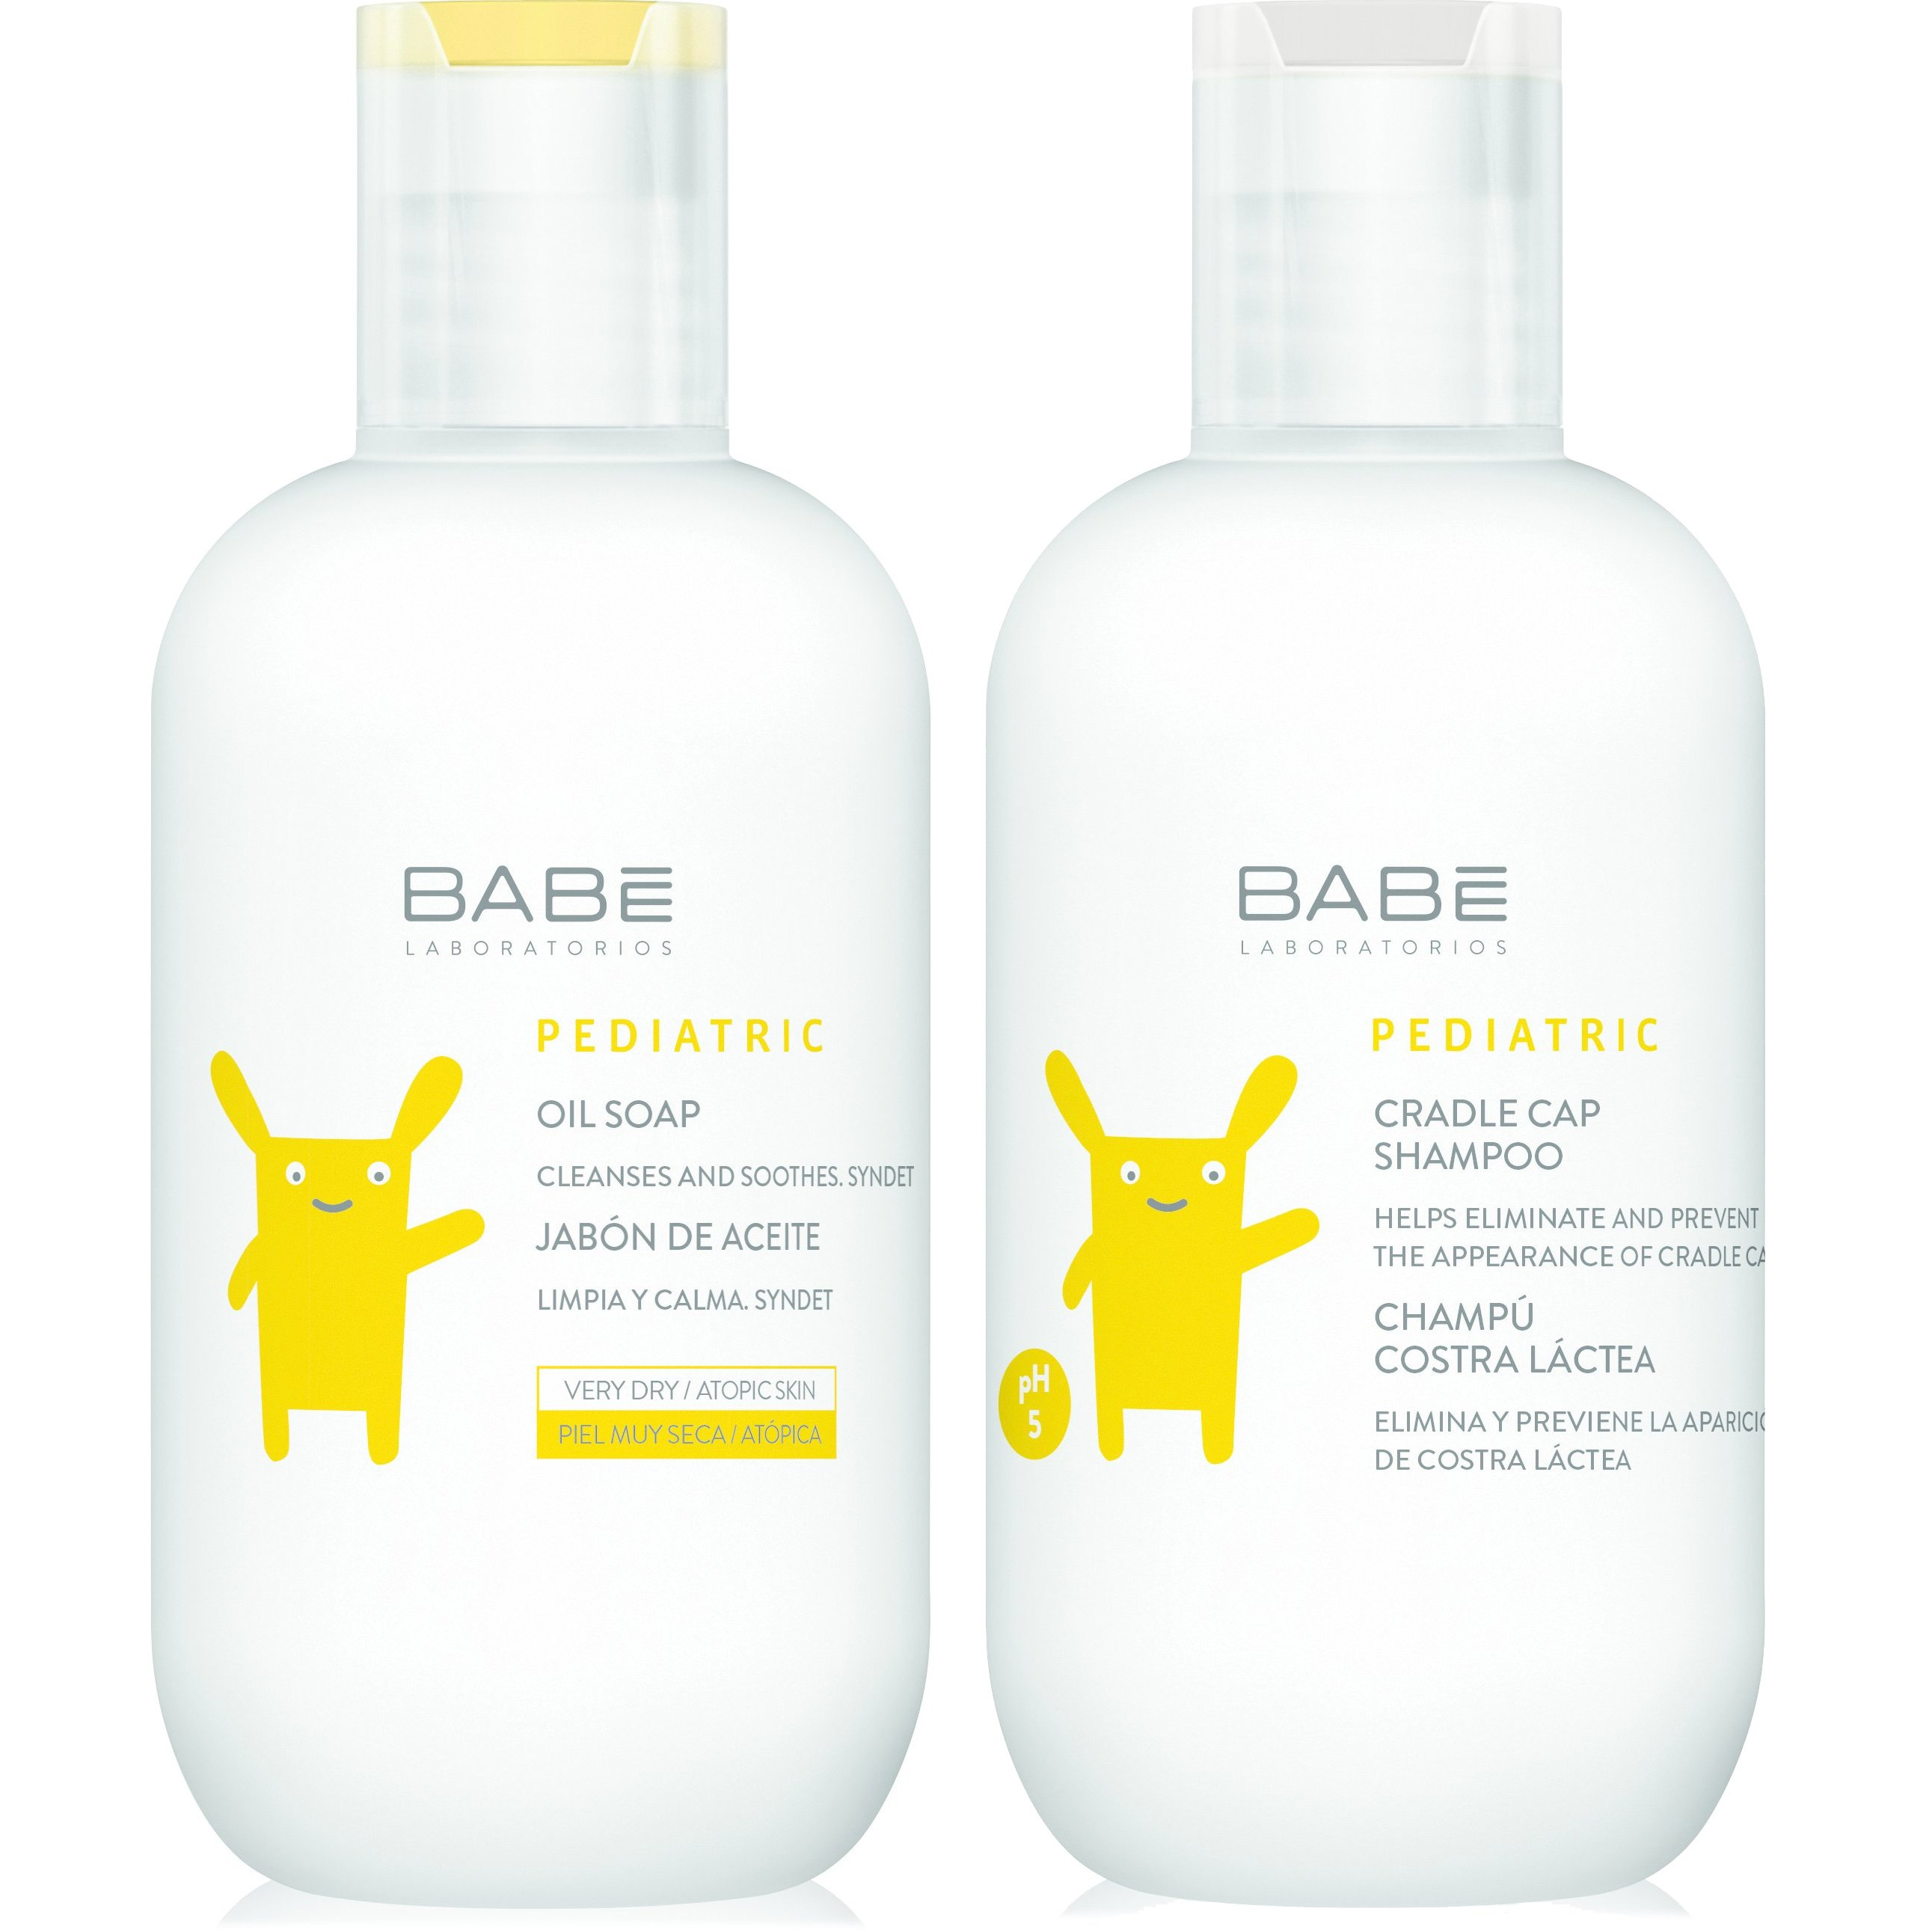 Babe Πακέτο Προσφοράς Babe Pediatric Oil Soap 200ml & Δώρο Babe Pediatric Crandle Cap Shampoo 200ml